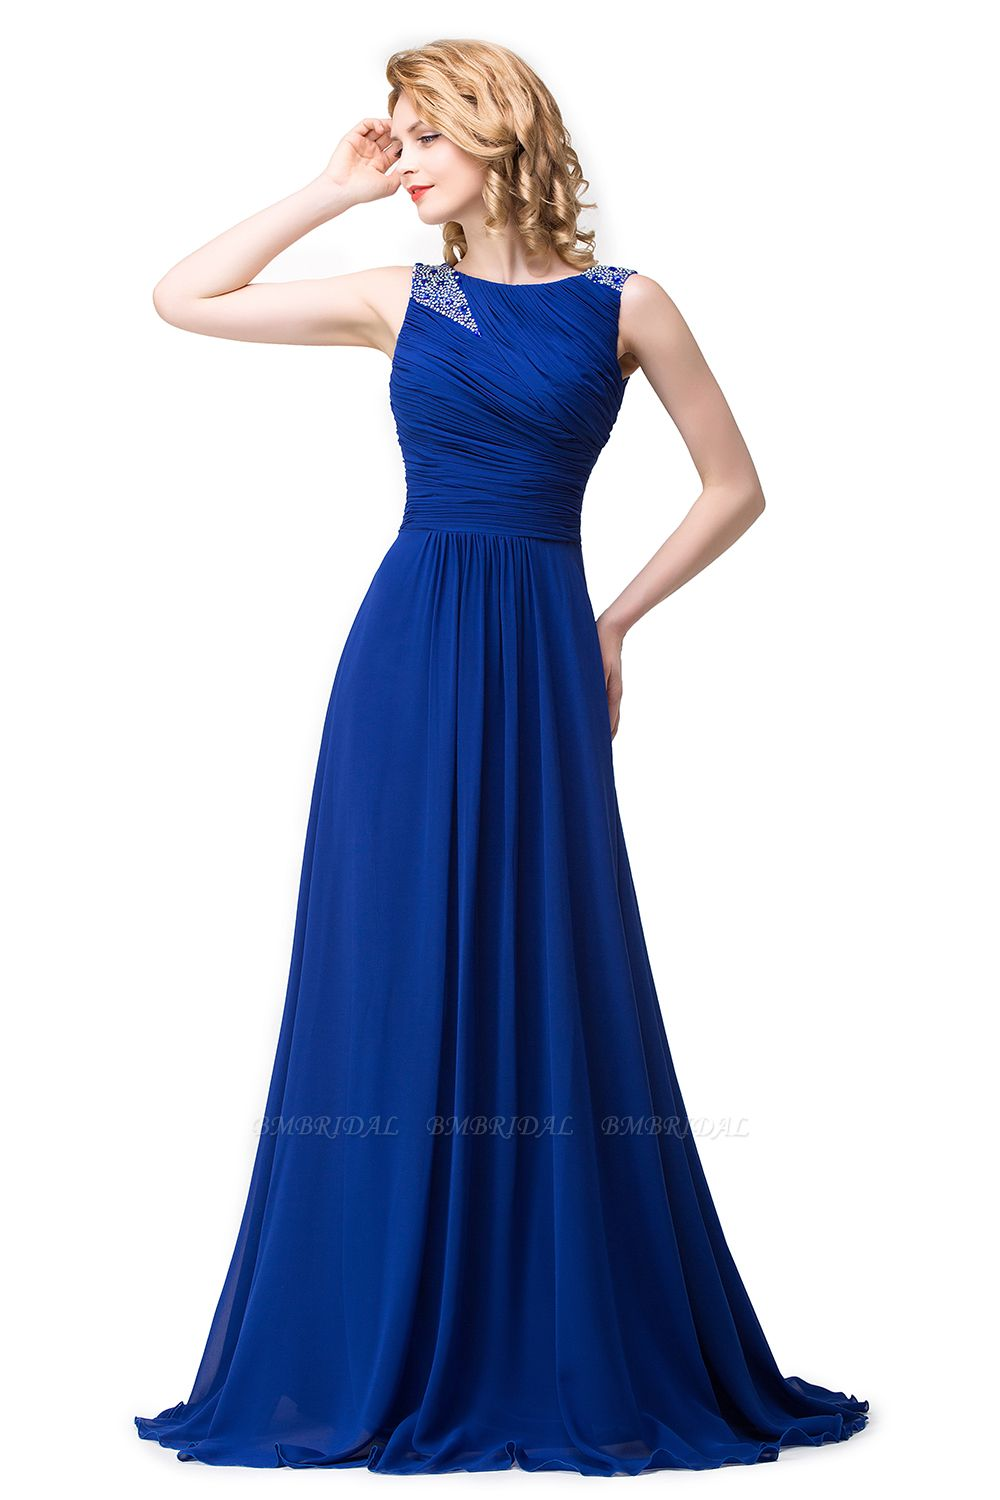 BMbridal Chiffon A-line Sexy Sparkly Crystal Long Prom Evening Dress